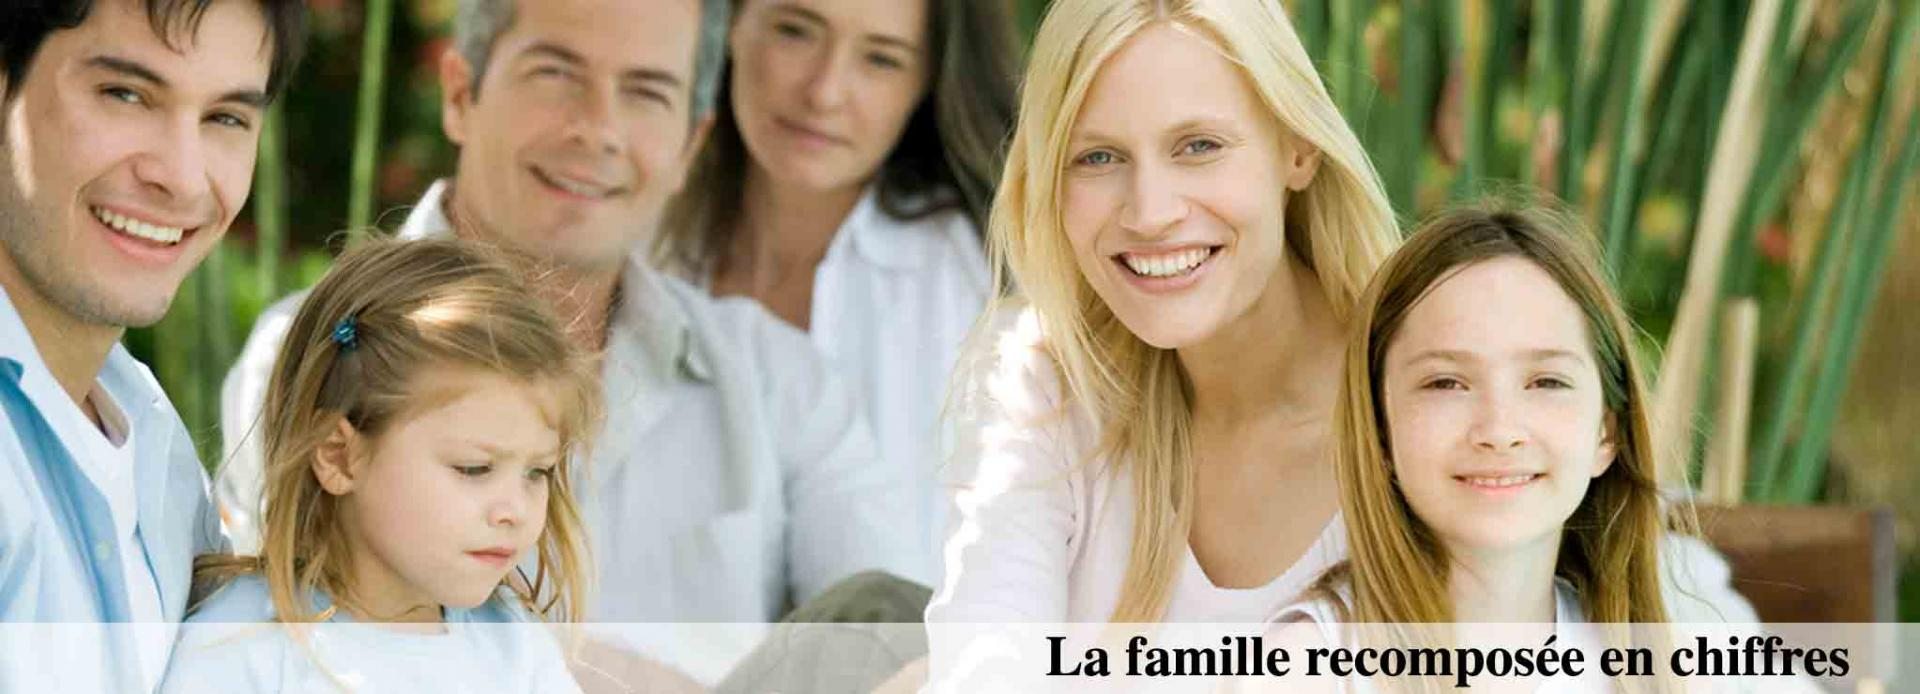 Calb20506famille recomposee jpg